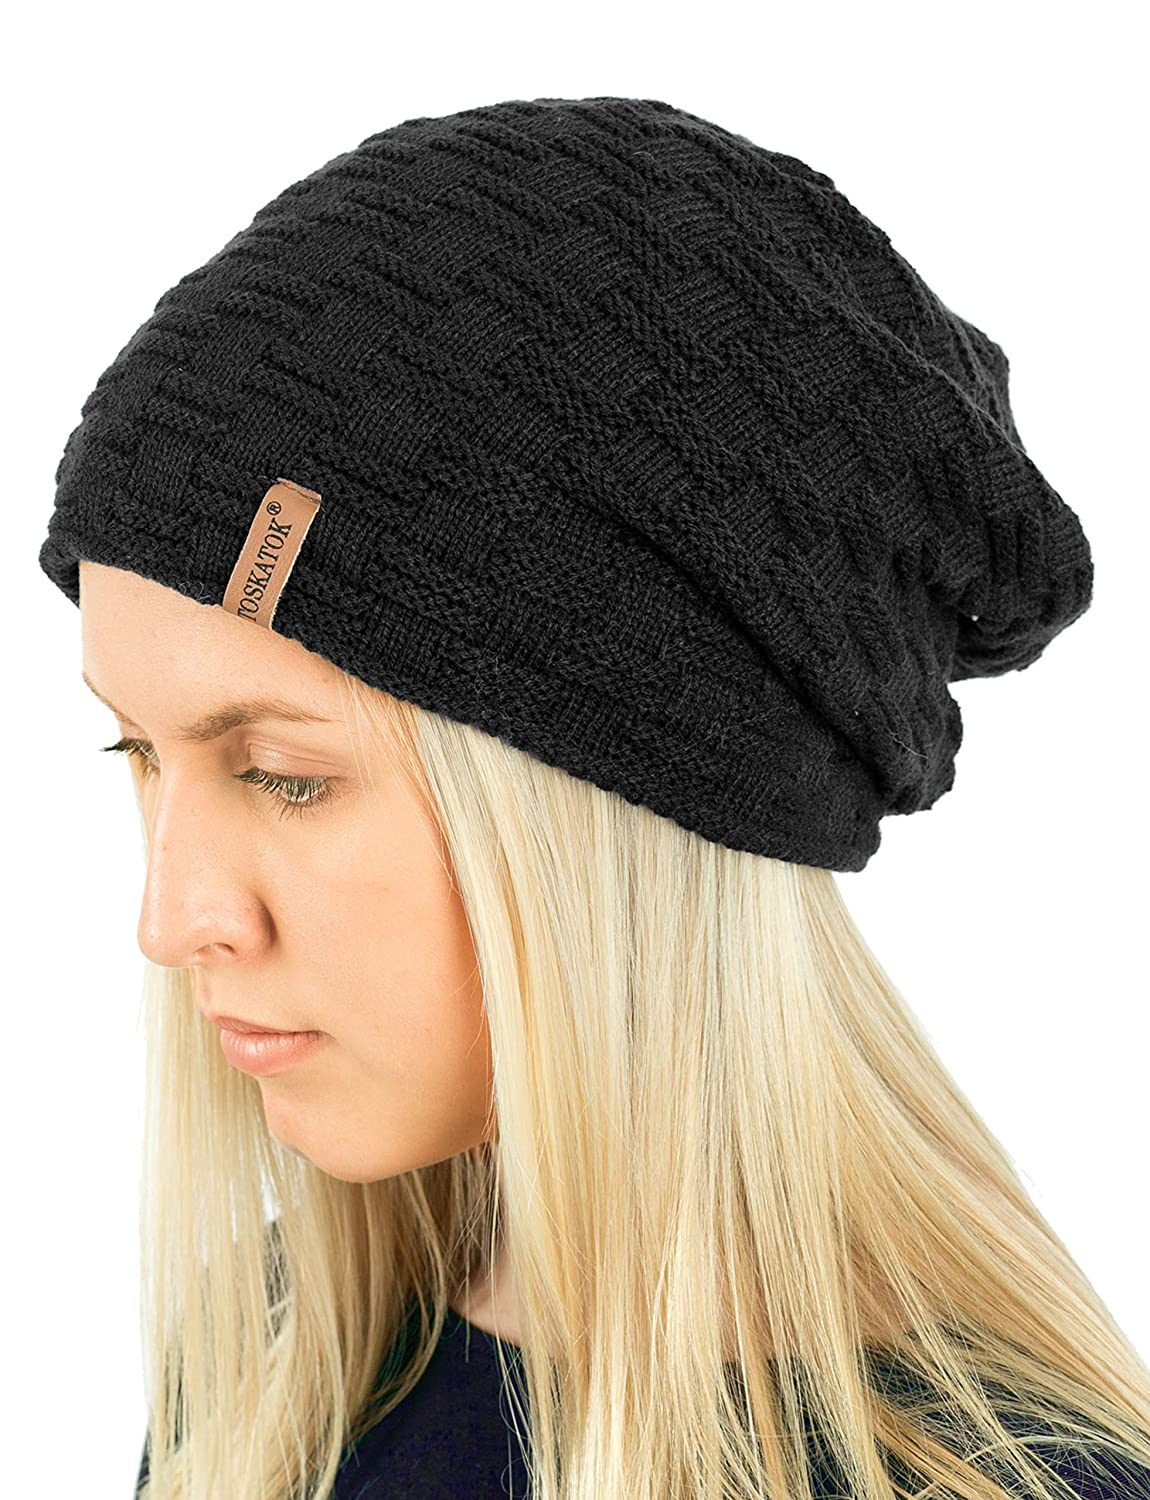 84e20829e5f TOSKATOK Ladies Mens Unisex Warm Winter Textured Knit Slouch Beanie Hat  with Cosy Faux Fur Teddy Fleece Liner-Black  Amazon.co.uk  Clothing